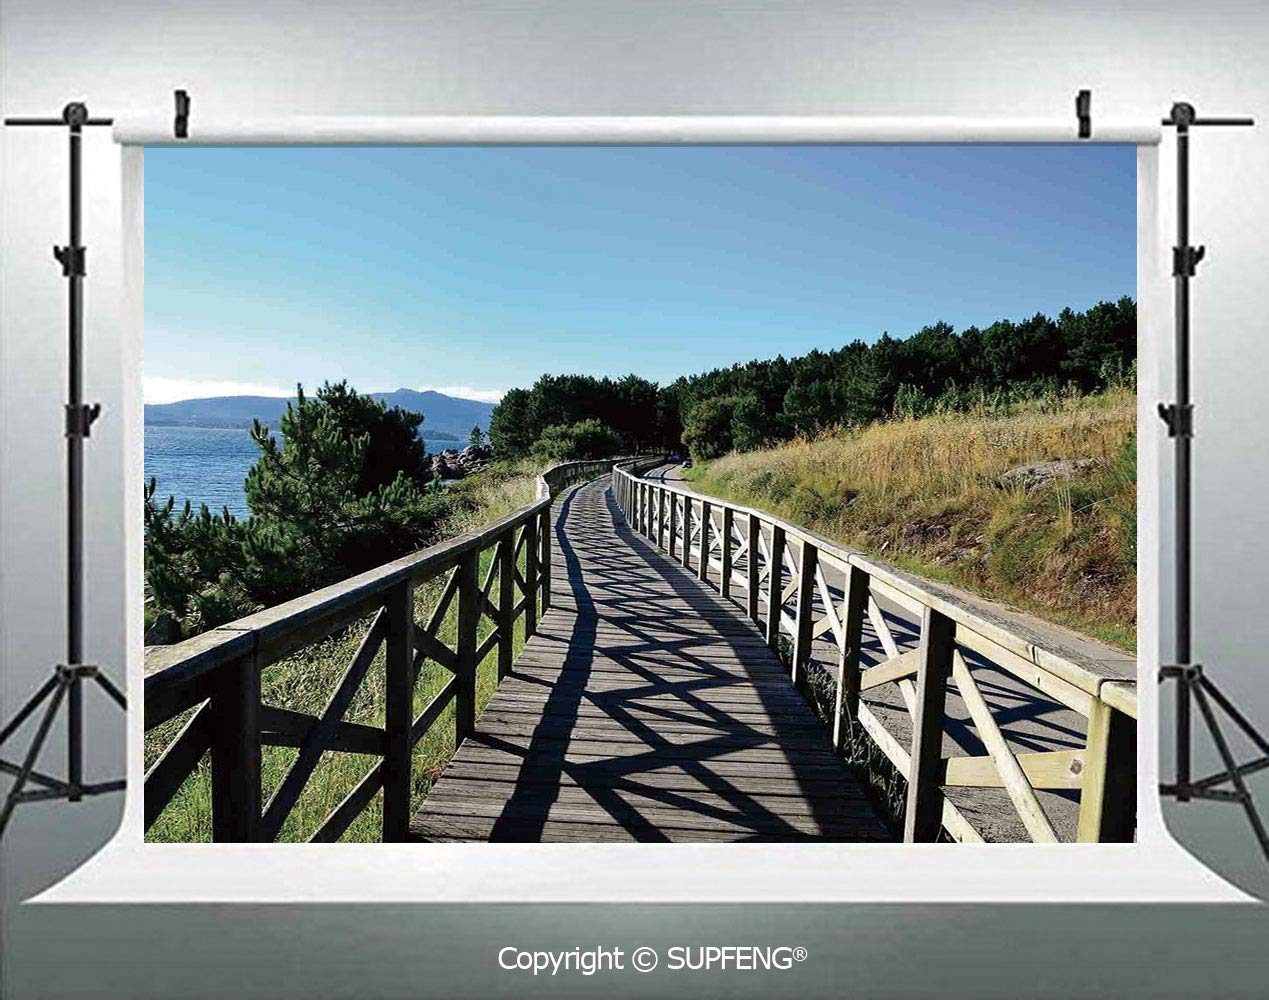 Amazoncom Photography Background Wooden Pathway by Sea Bridge 1269x1000